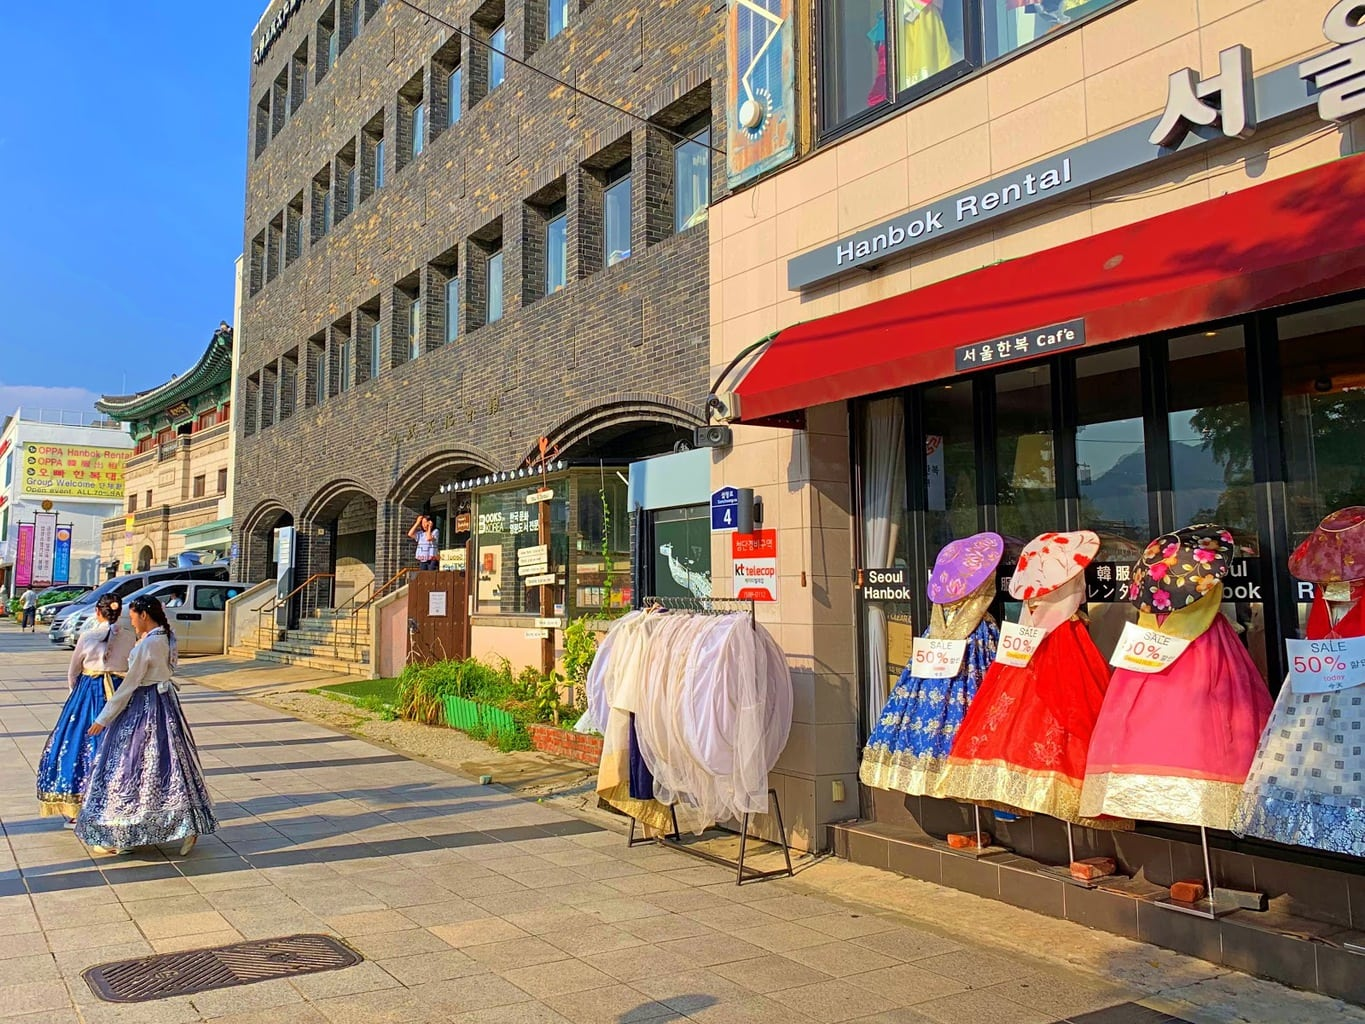 Rent a Hanbok (traditional Korean clothing) just outside Gyeongbokgung